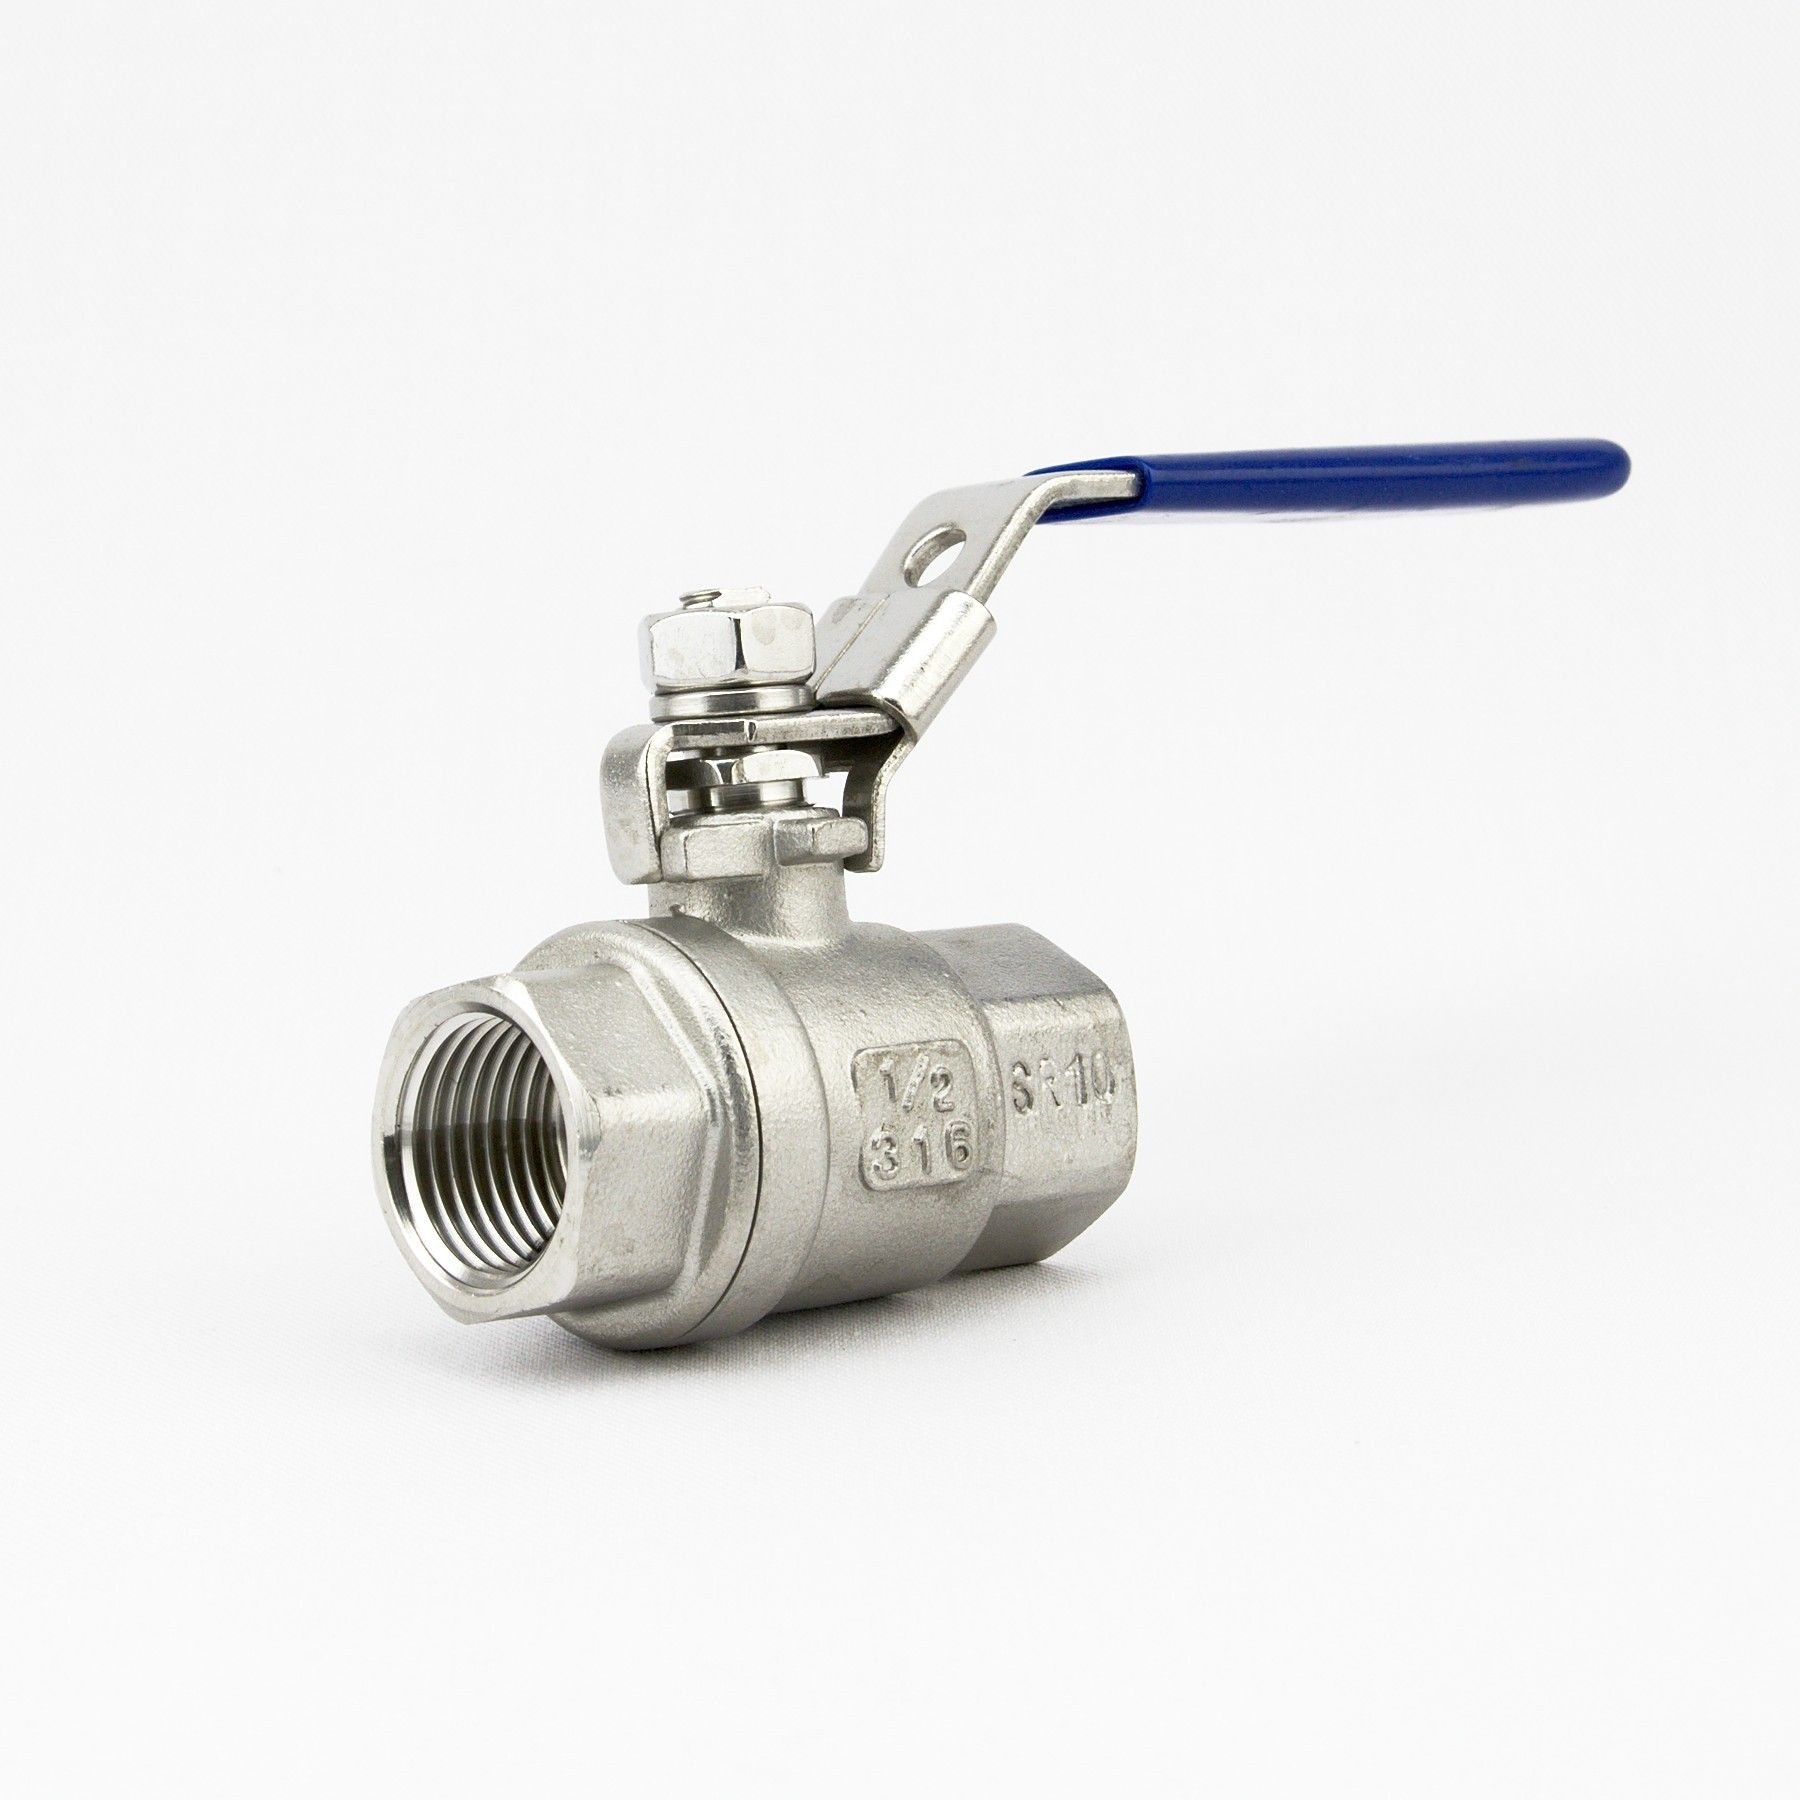 "2-piece full bore ball valve with locking handle (1/2"" BSP)"